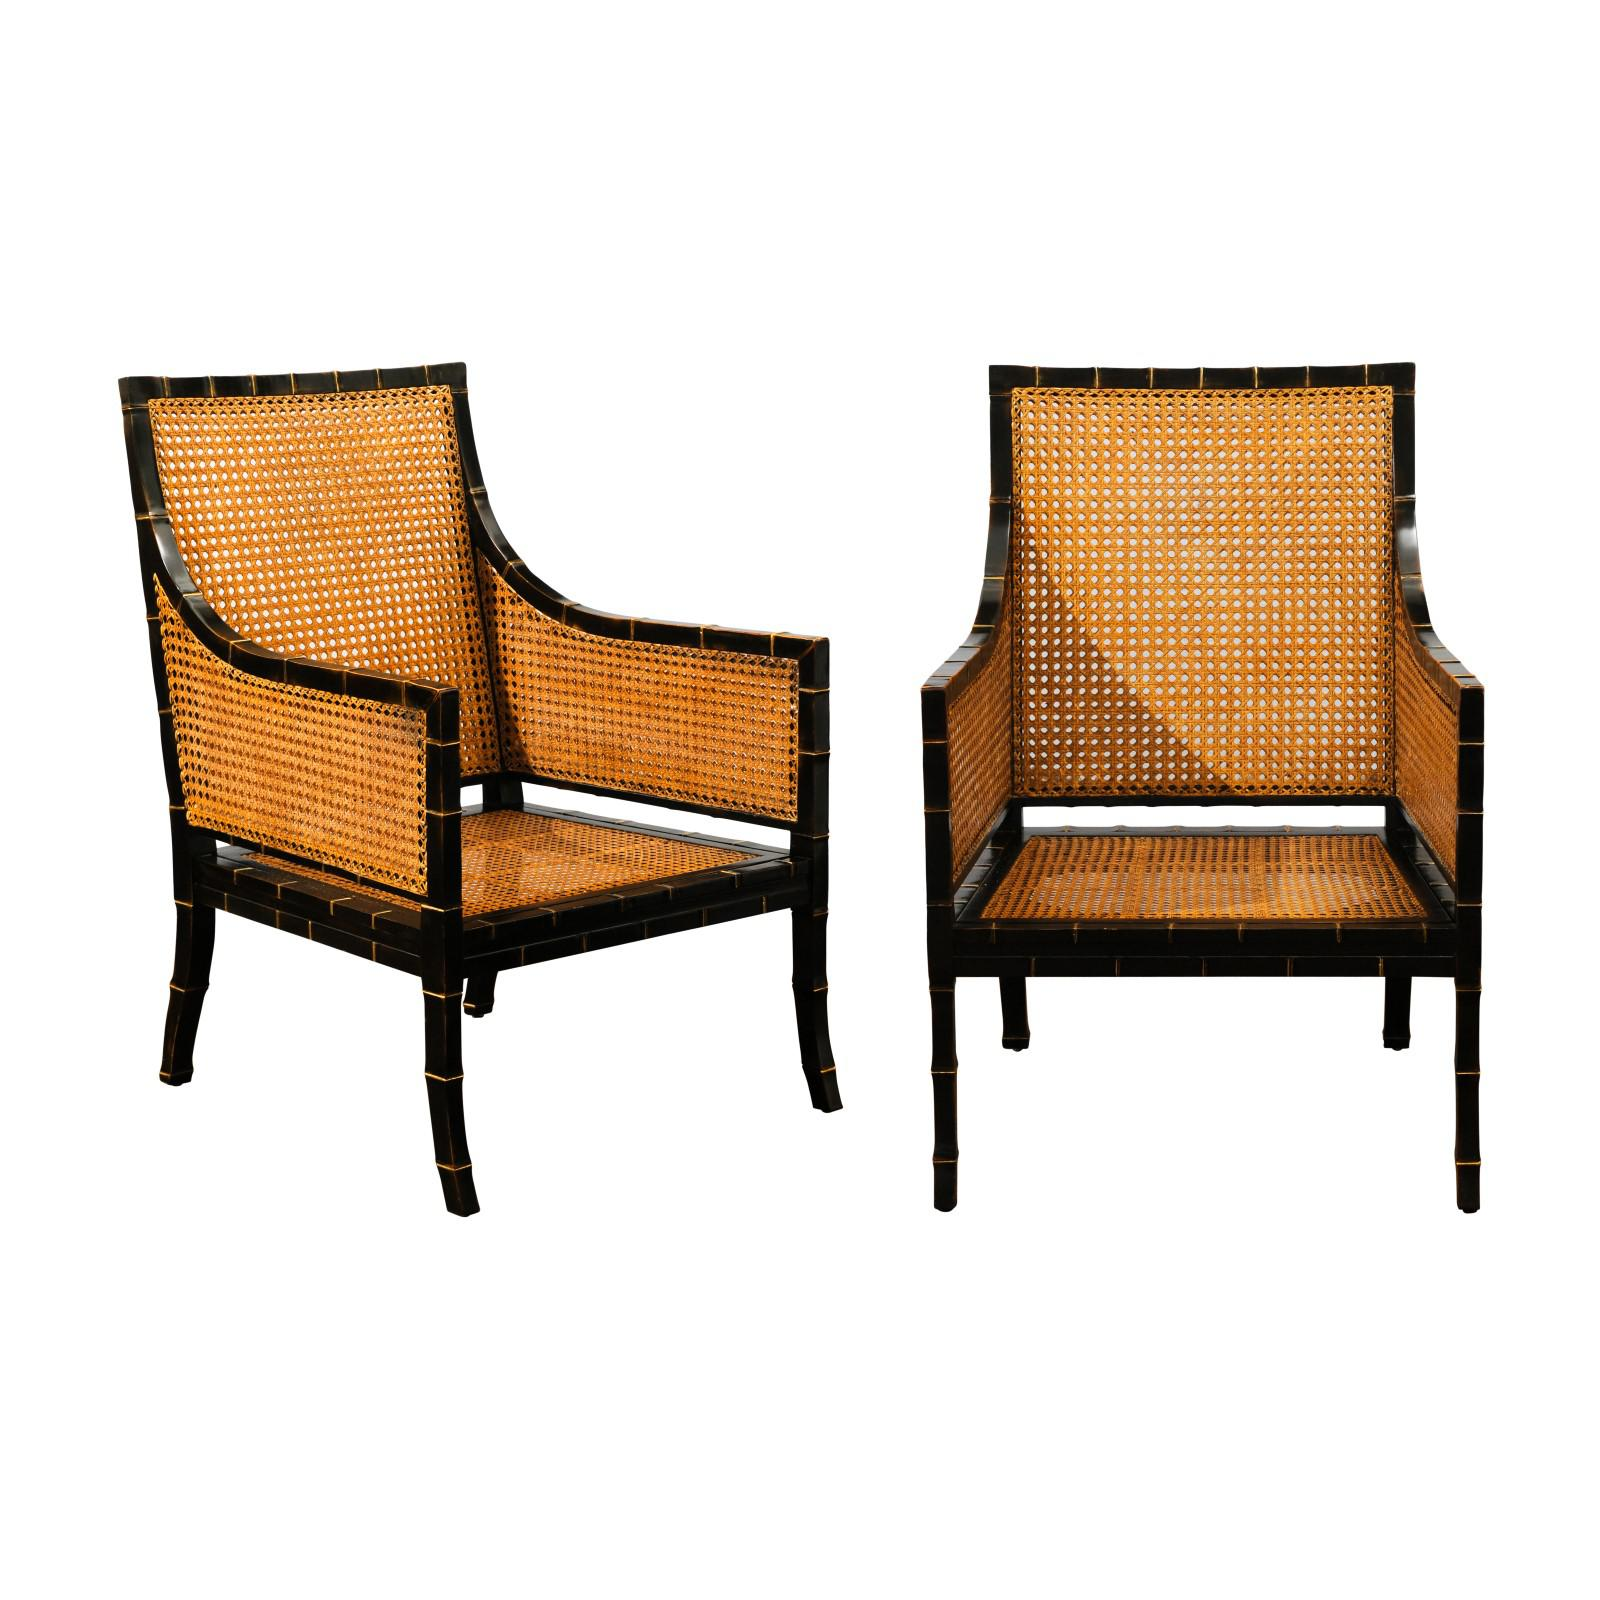 Charmant Beautiful Restored Pair Of Large Scale Double Sided Cane Club Chairs For  Sale